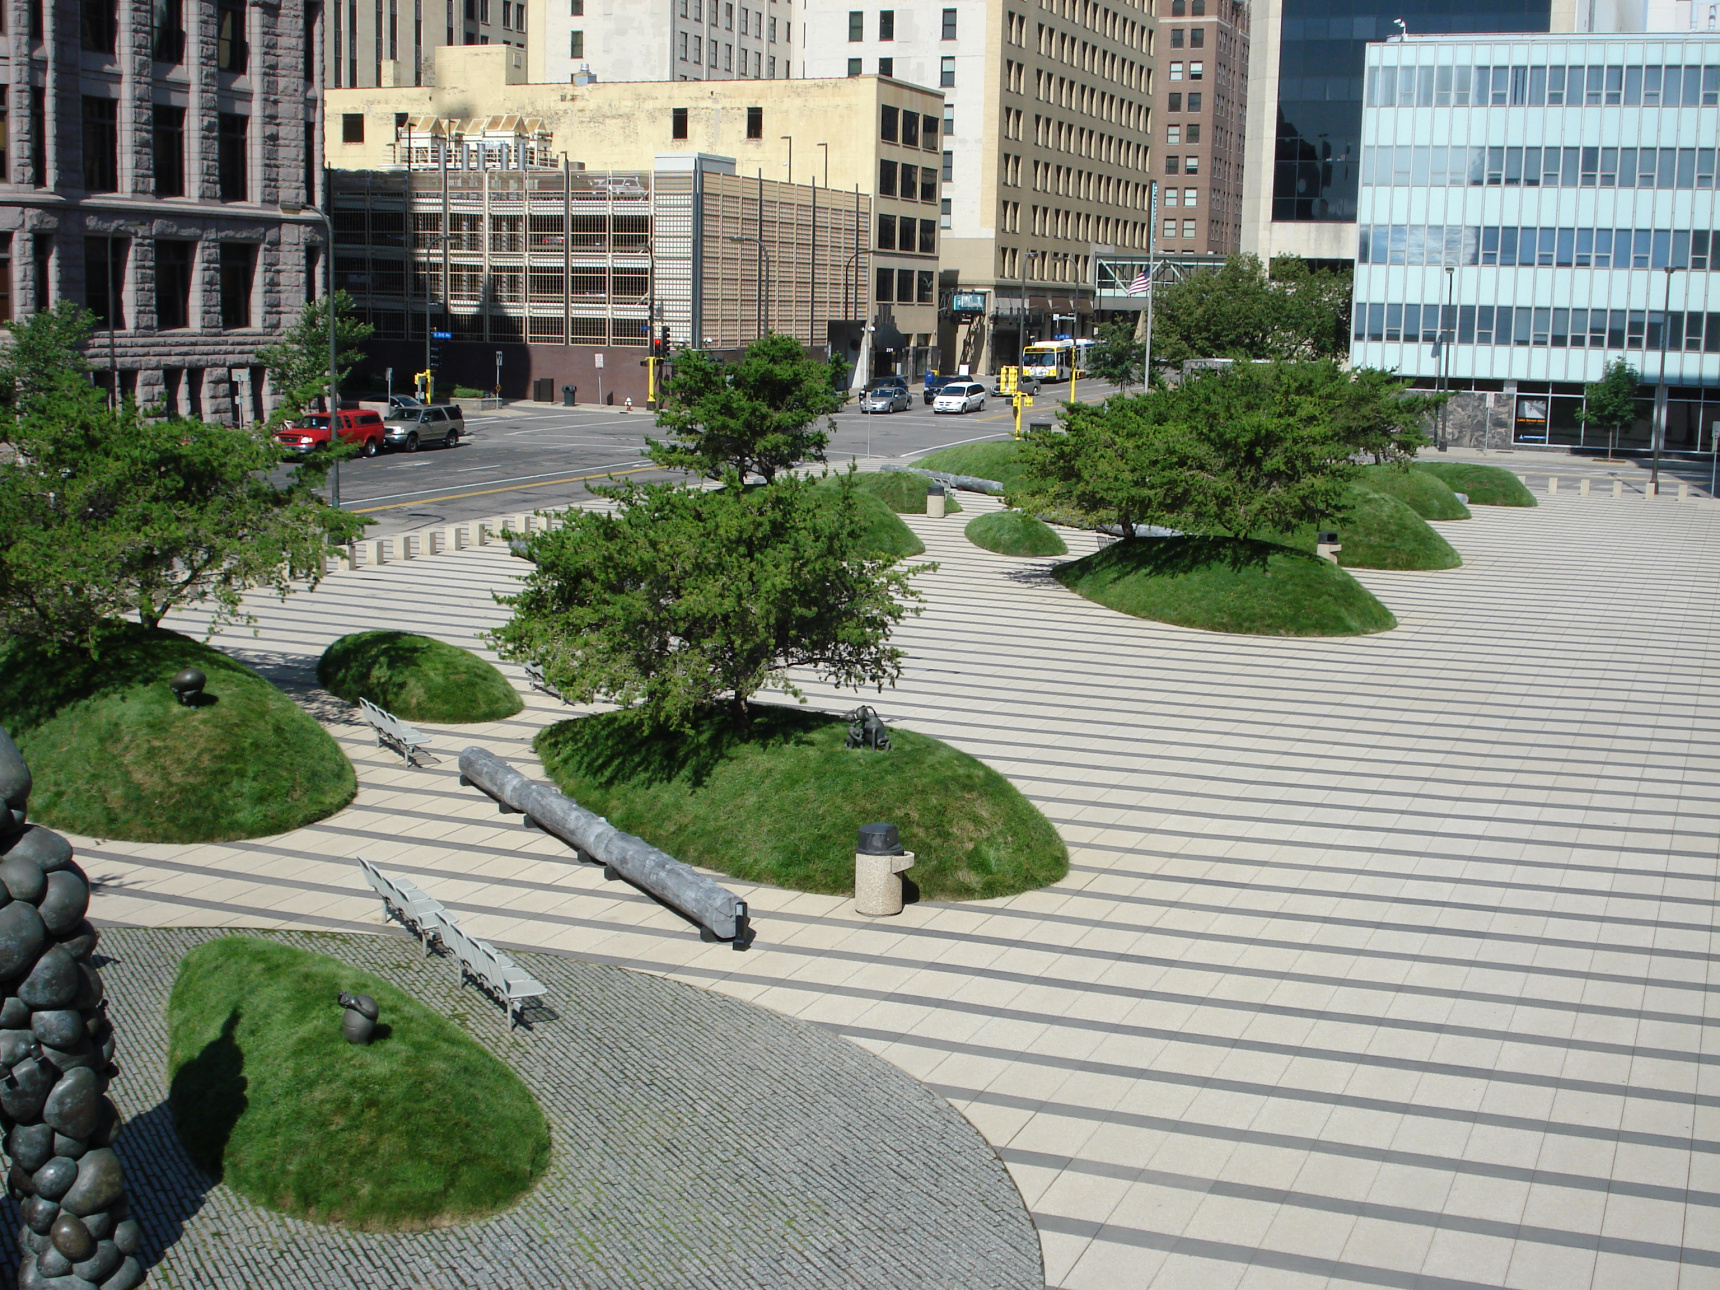 Federal Courthouse Minneapolis MN. Designed by Martha Schwartz Partners, these turf mounds represent drumlin deposits left by glaciers but are actually a clever security feature protecting the buildings while providing artistic and environmental interest. This iconic property is an urban treasure that our team proudly maintains.